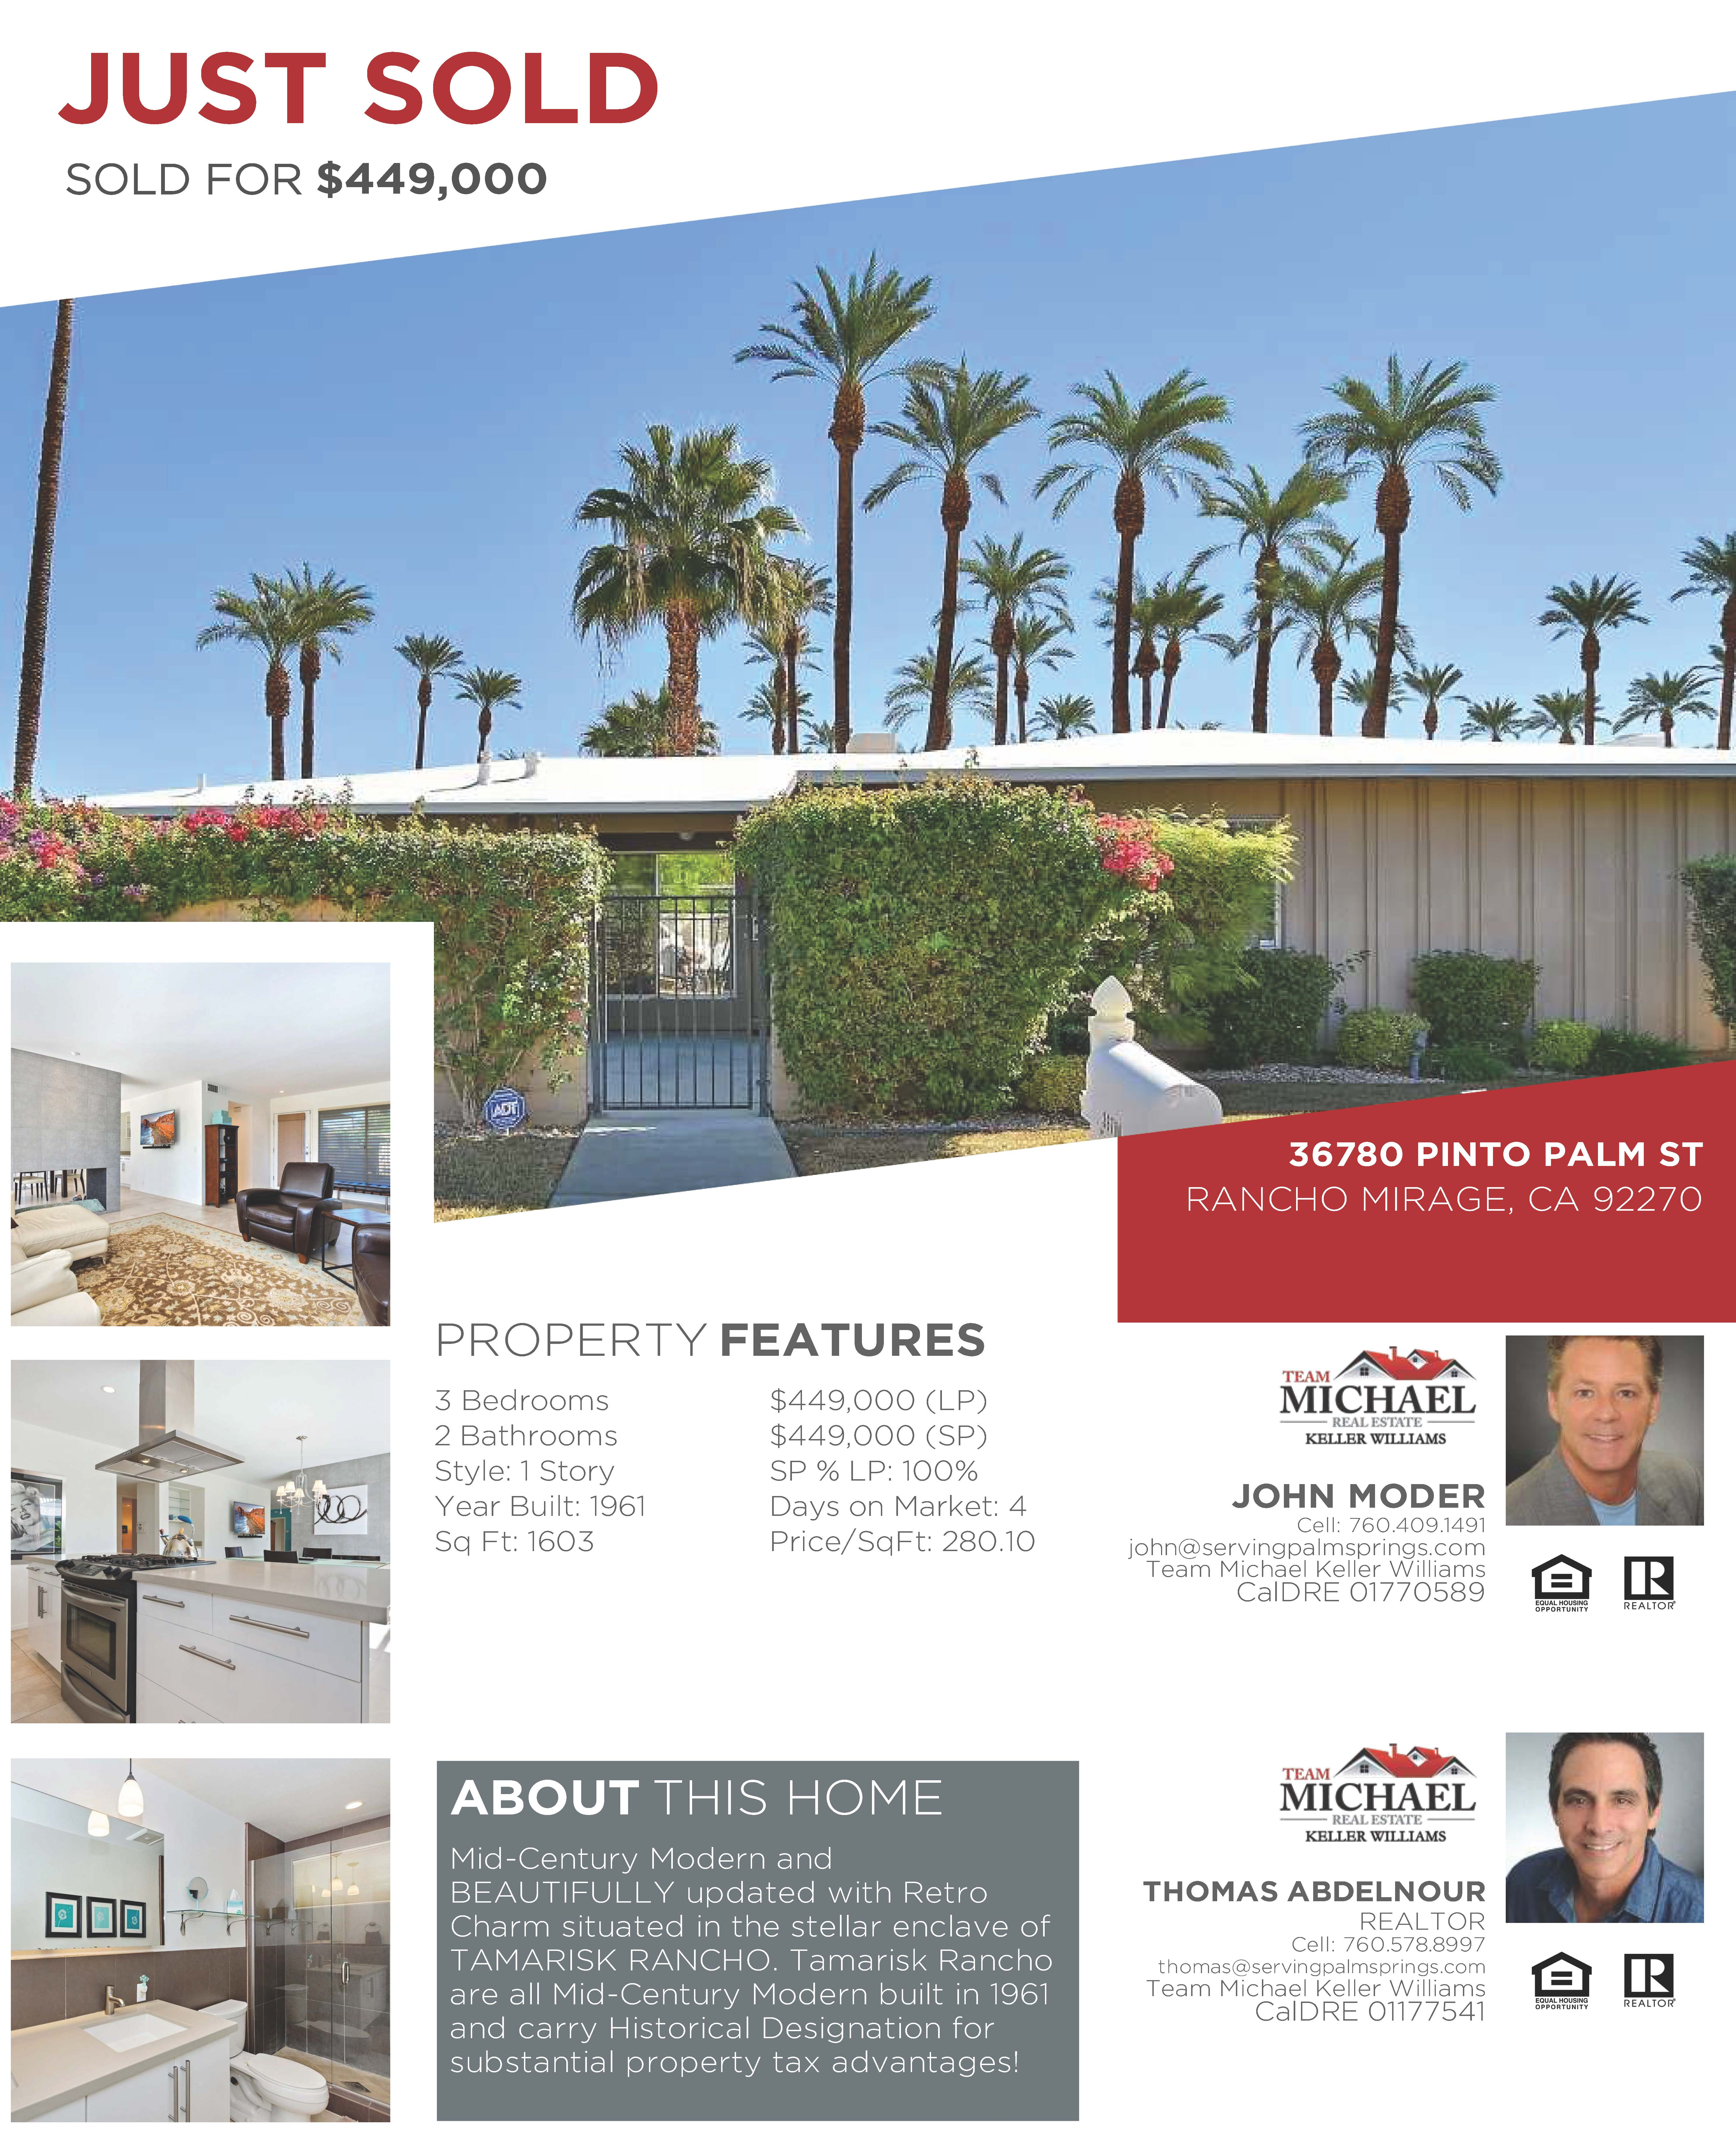 36780 Pinto Palm Street <a href='https://www.servingpalmsprings.com/index.php?types[]=1&types[]=2&areas[]=city:Rancho Mirage&beds=0&baths=0&min=0&max=100000000&map=0&quick=1&submit=Search' title='Search Properties in Rancho Mirage'>Rancho Mirage</a>